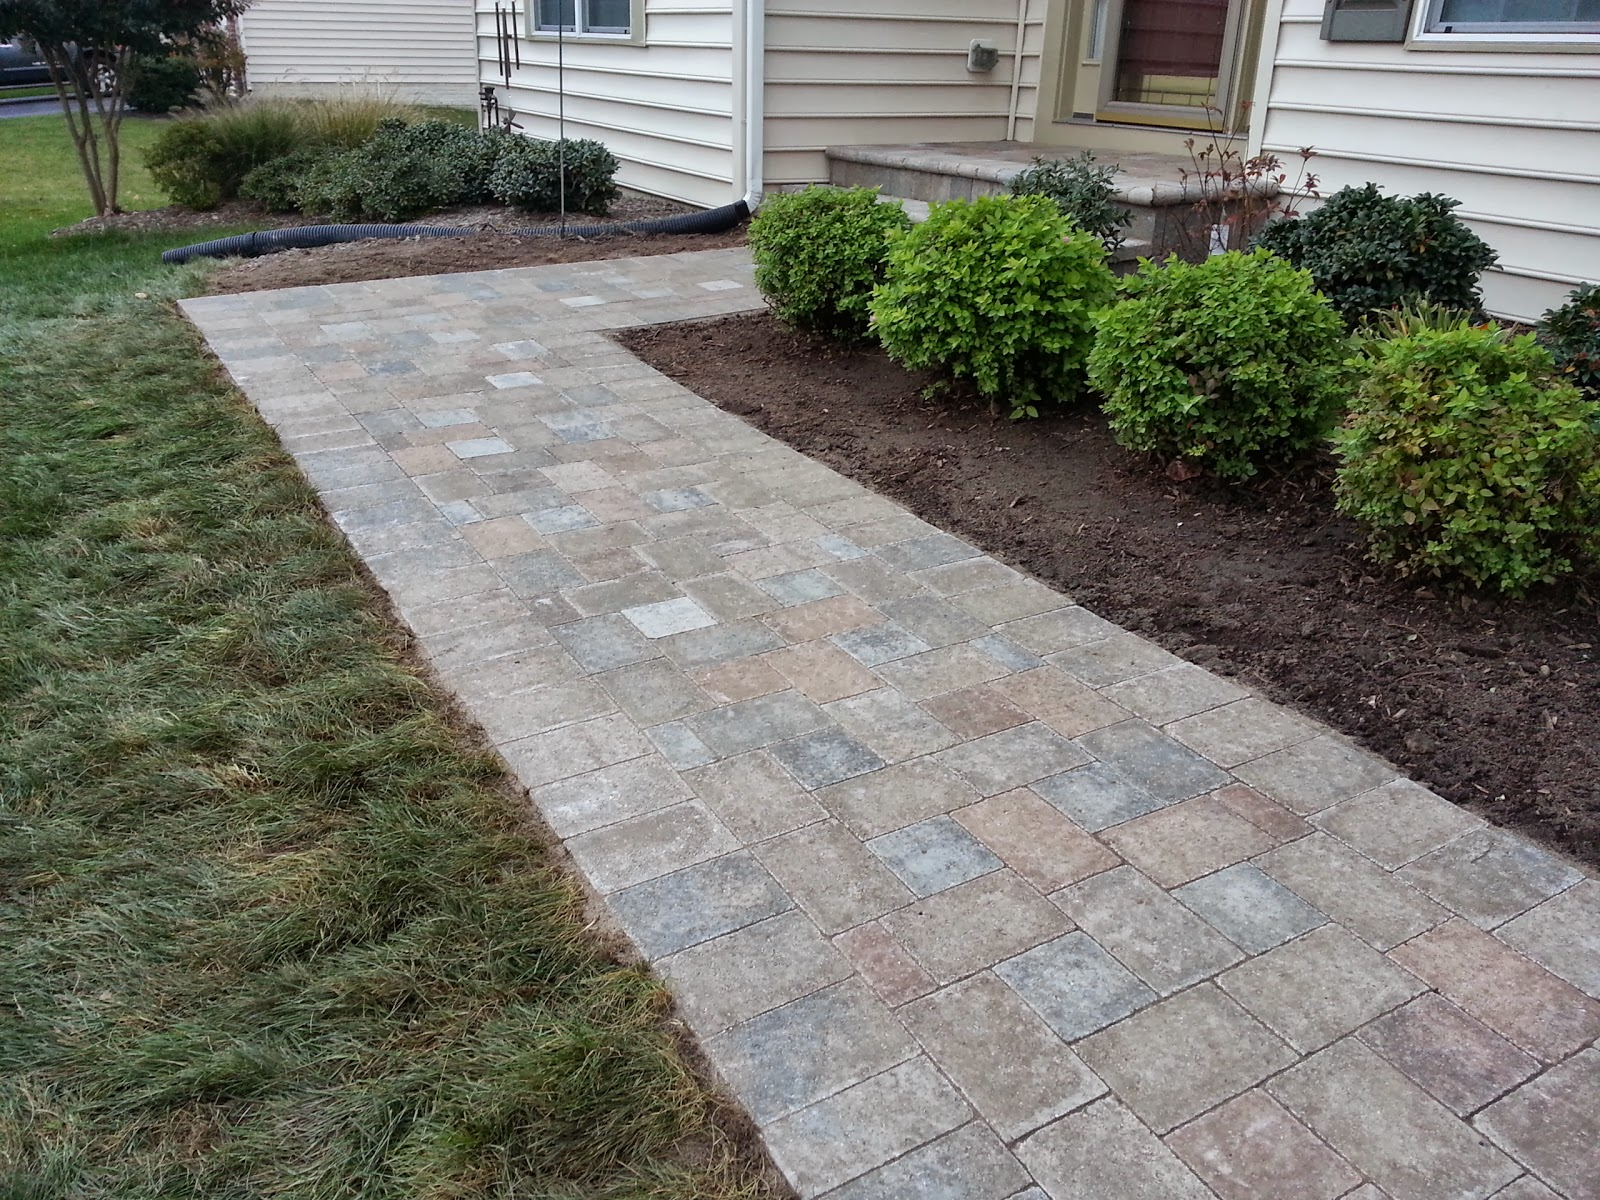 Life Time Pavers: Chiseled Paver Front Walkway